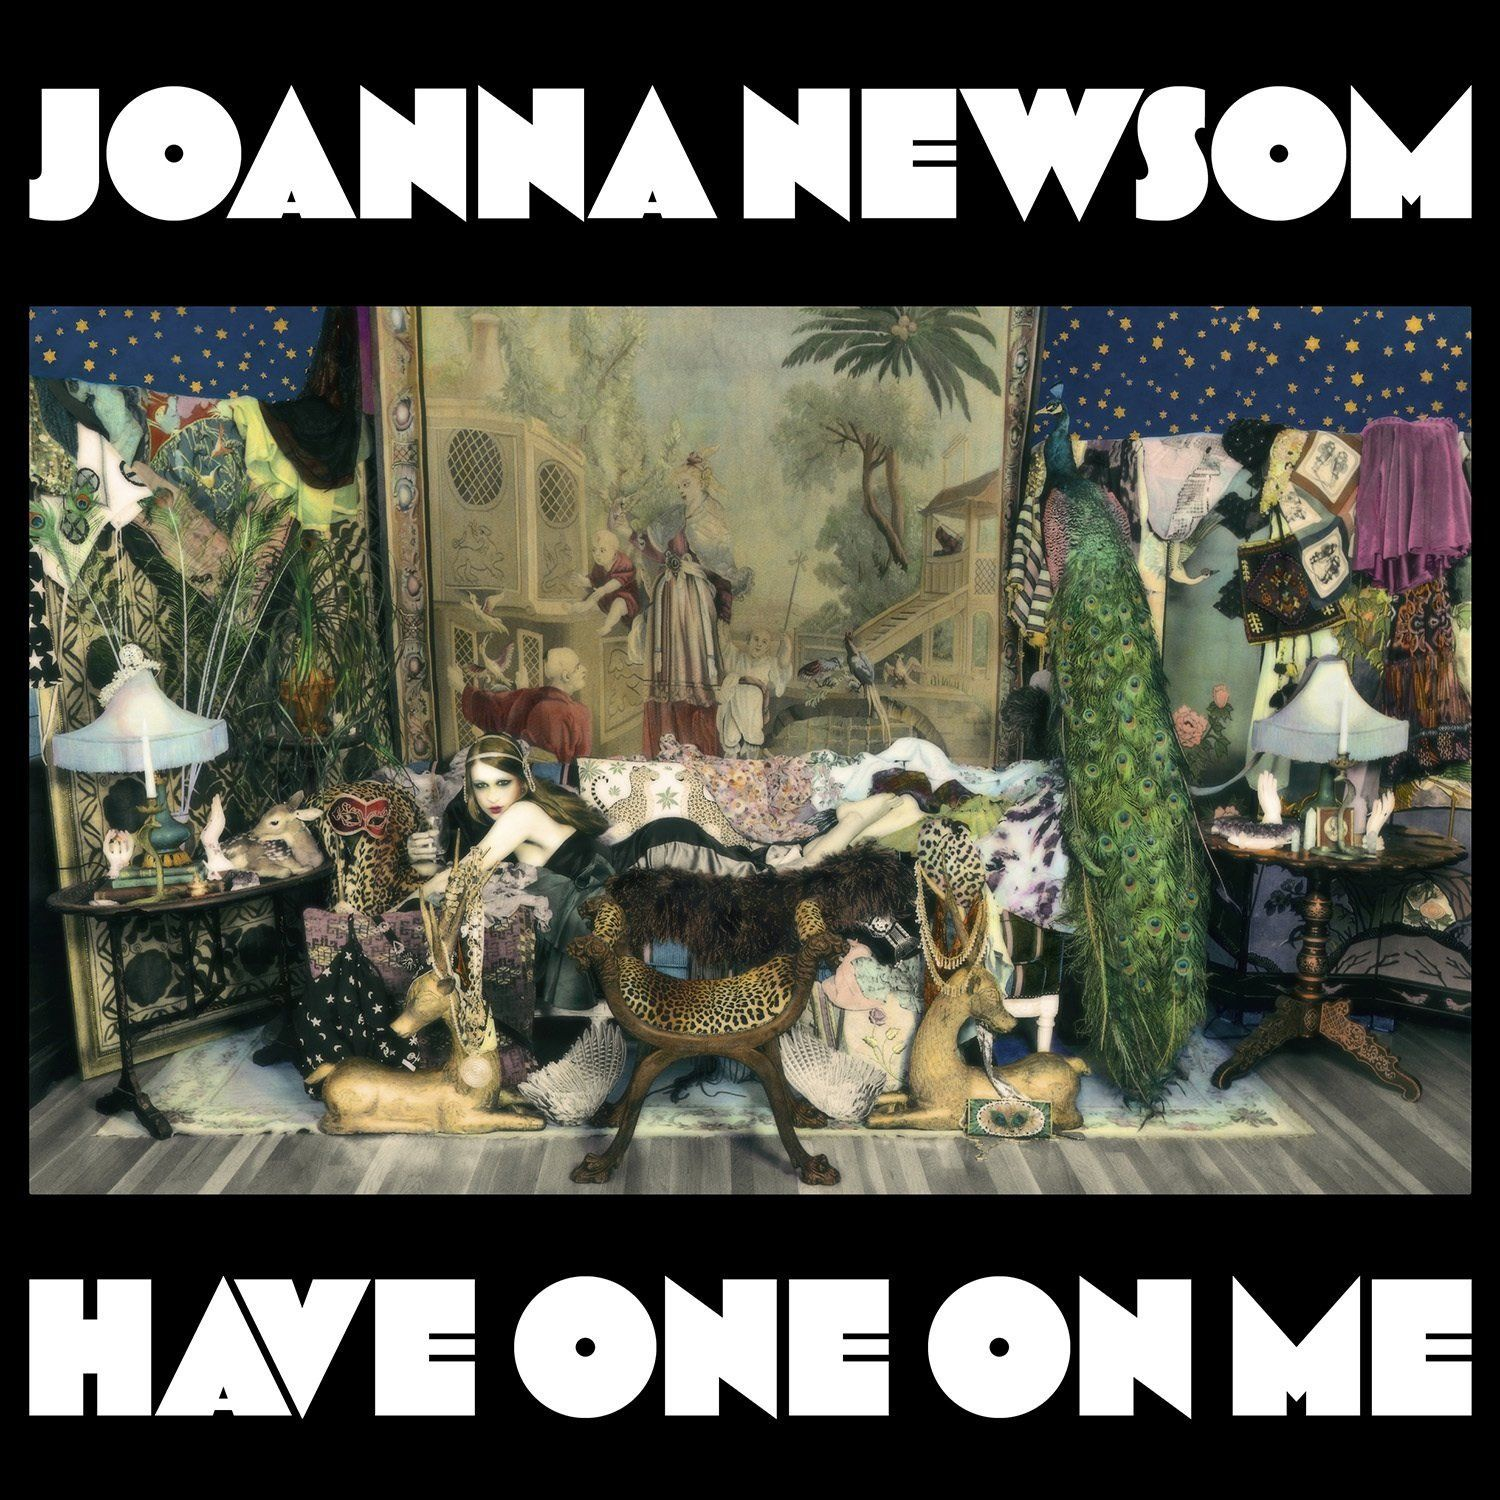 Joanna Newsom - Have One On Me album cover